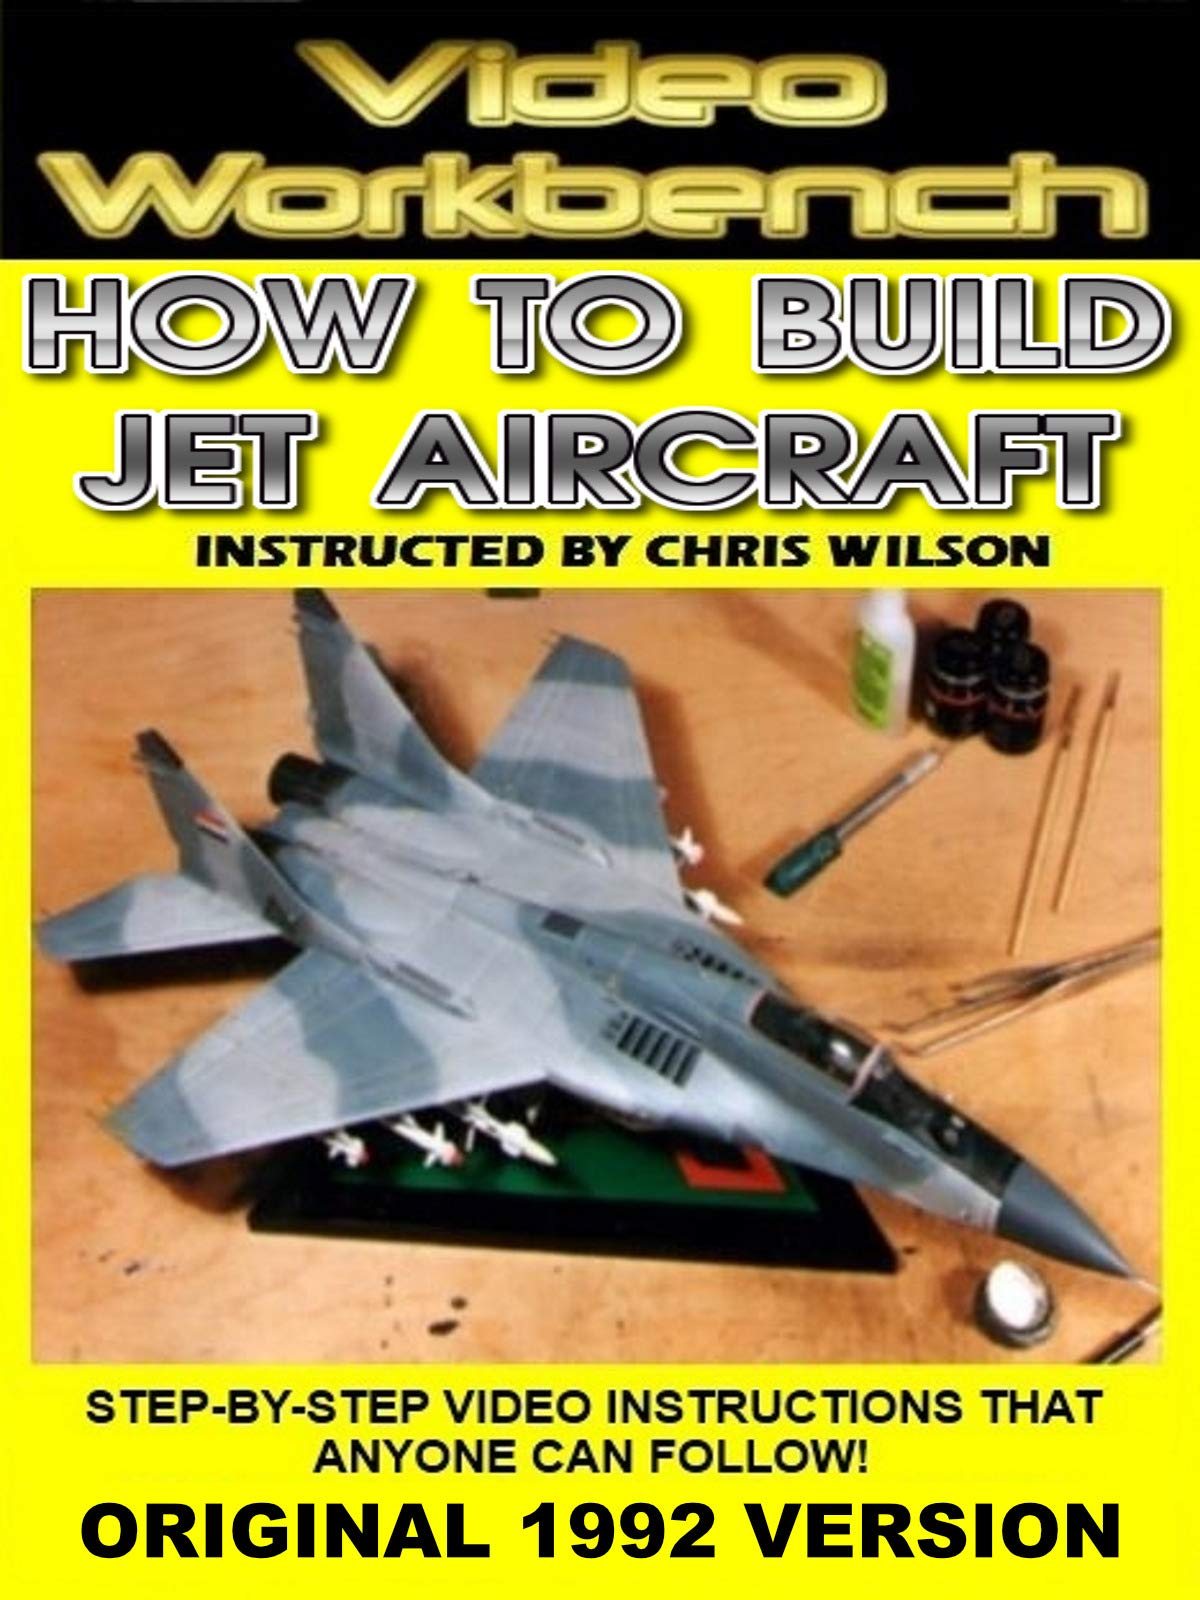 Video Workbench: How to Build Jet Aircraft Models (1992 Original)